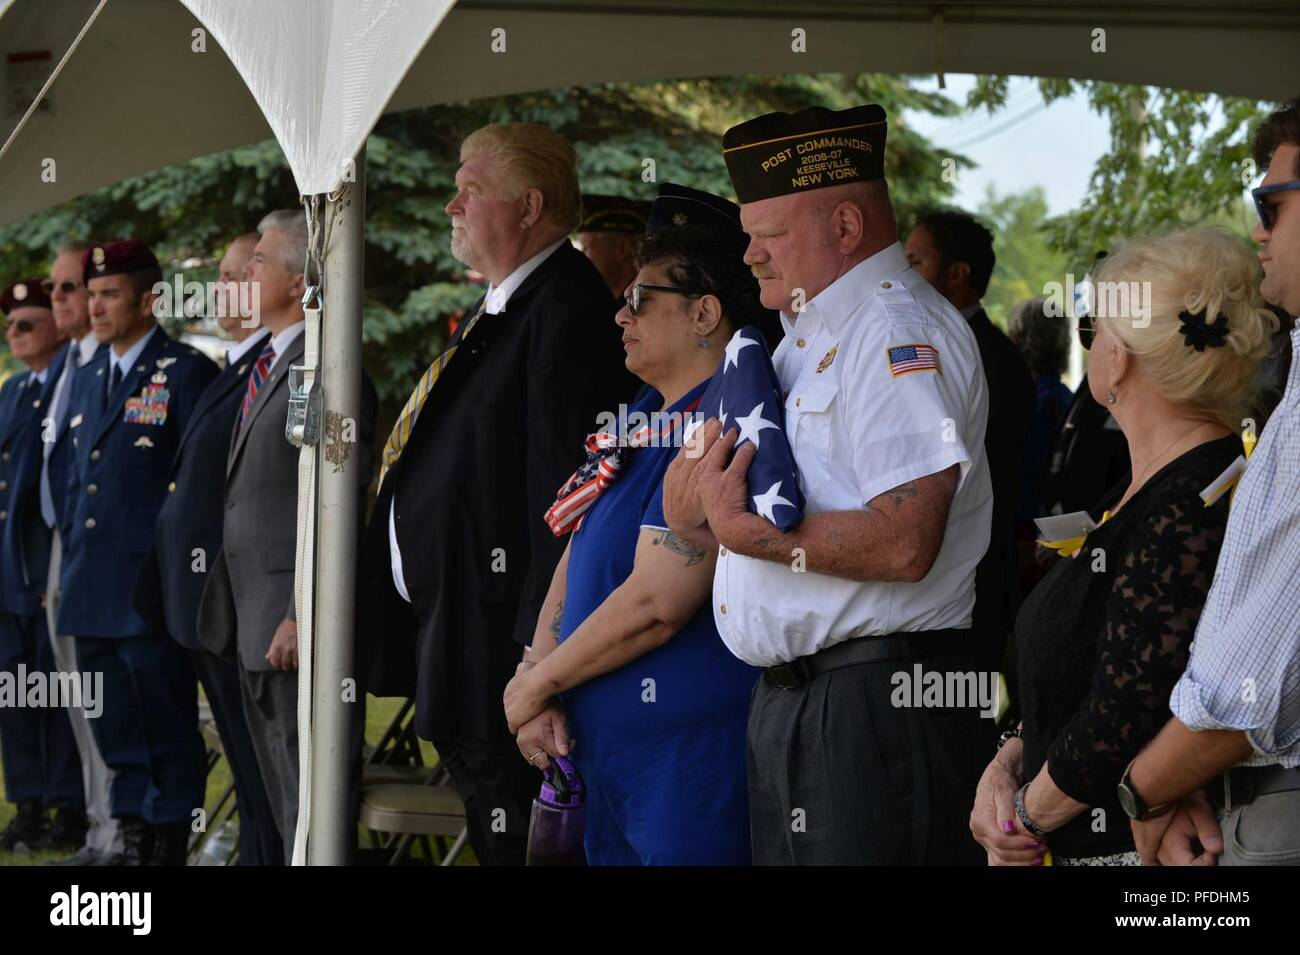 Retired New York Air National Guard 106th Rescue Wing Chief Master Sgt. Mike McManus, pararescueman NCOIC, gives the folded American flag to the VFW 1505 Commander, Mr. Mike Billinger, Keeseville, N.Y., June 13, 2018. On June 13, 1978, an HH-3E Jolly Green Giant Helicopter from the 102nd Aerospace Rescue and Recovery Group now the 106th Rescue Wing in Westhampton Beach N.Y., was returning to base after training at Plattsburgh Air Force Base, N.Y. After encountering inclement weather, the seven members turned back to Plattsburgh, but with low visibility, the HH-3E hit the Trembleau Mountain jus - Stock Image